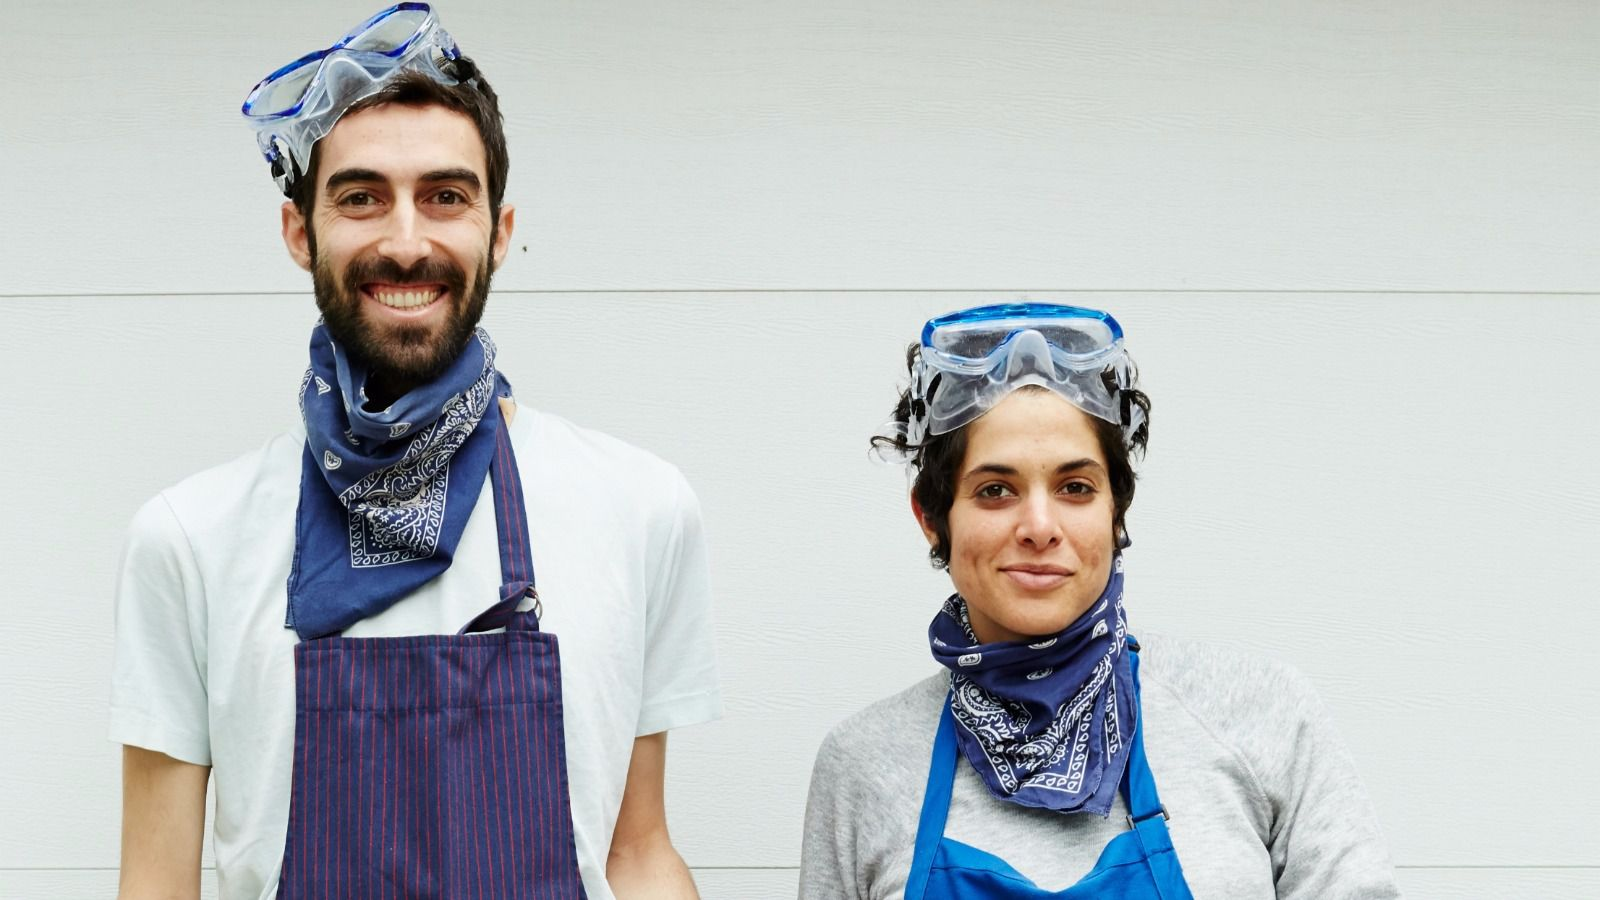 The author photo shows Jeffrey Yoskowitz and Liz Alpern looking particularly bad-ass, wearing the protective gear they use when making large batches of horseradish.